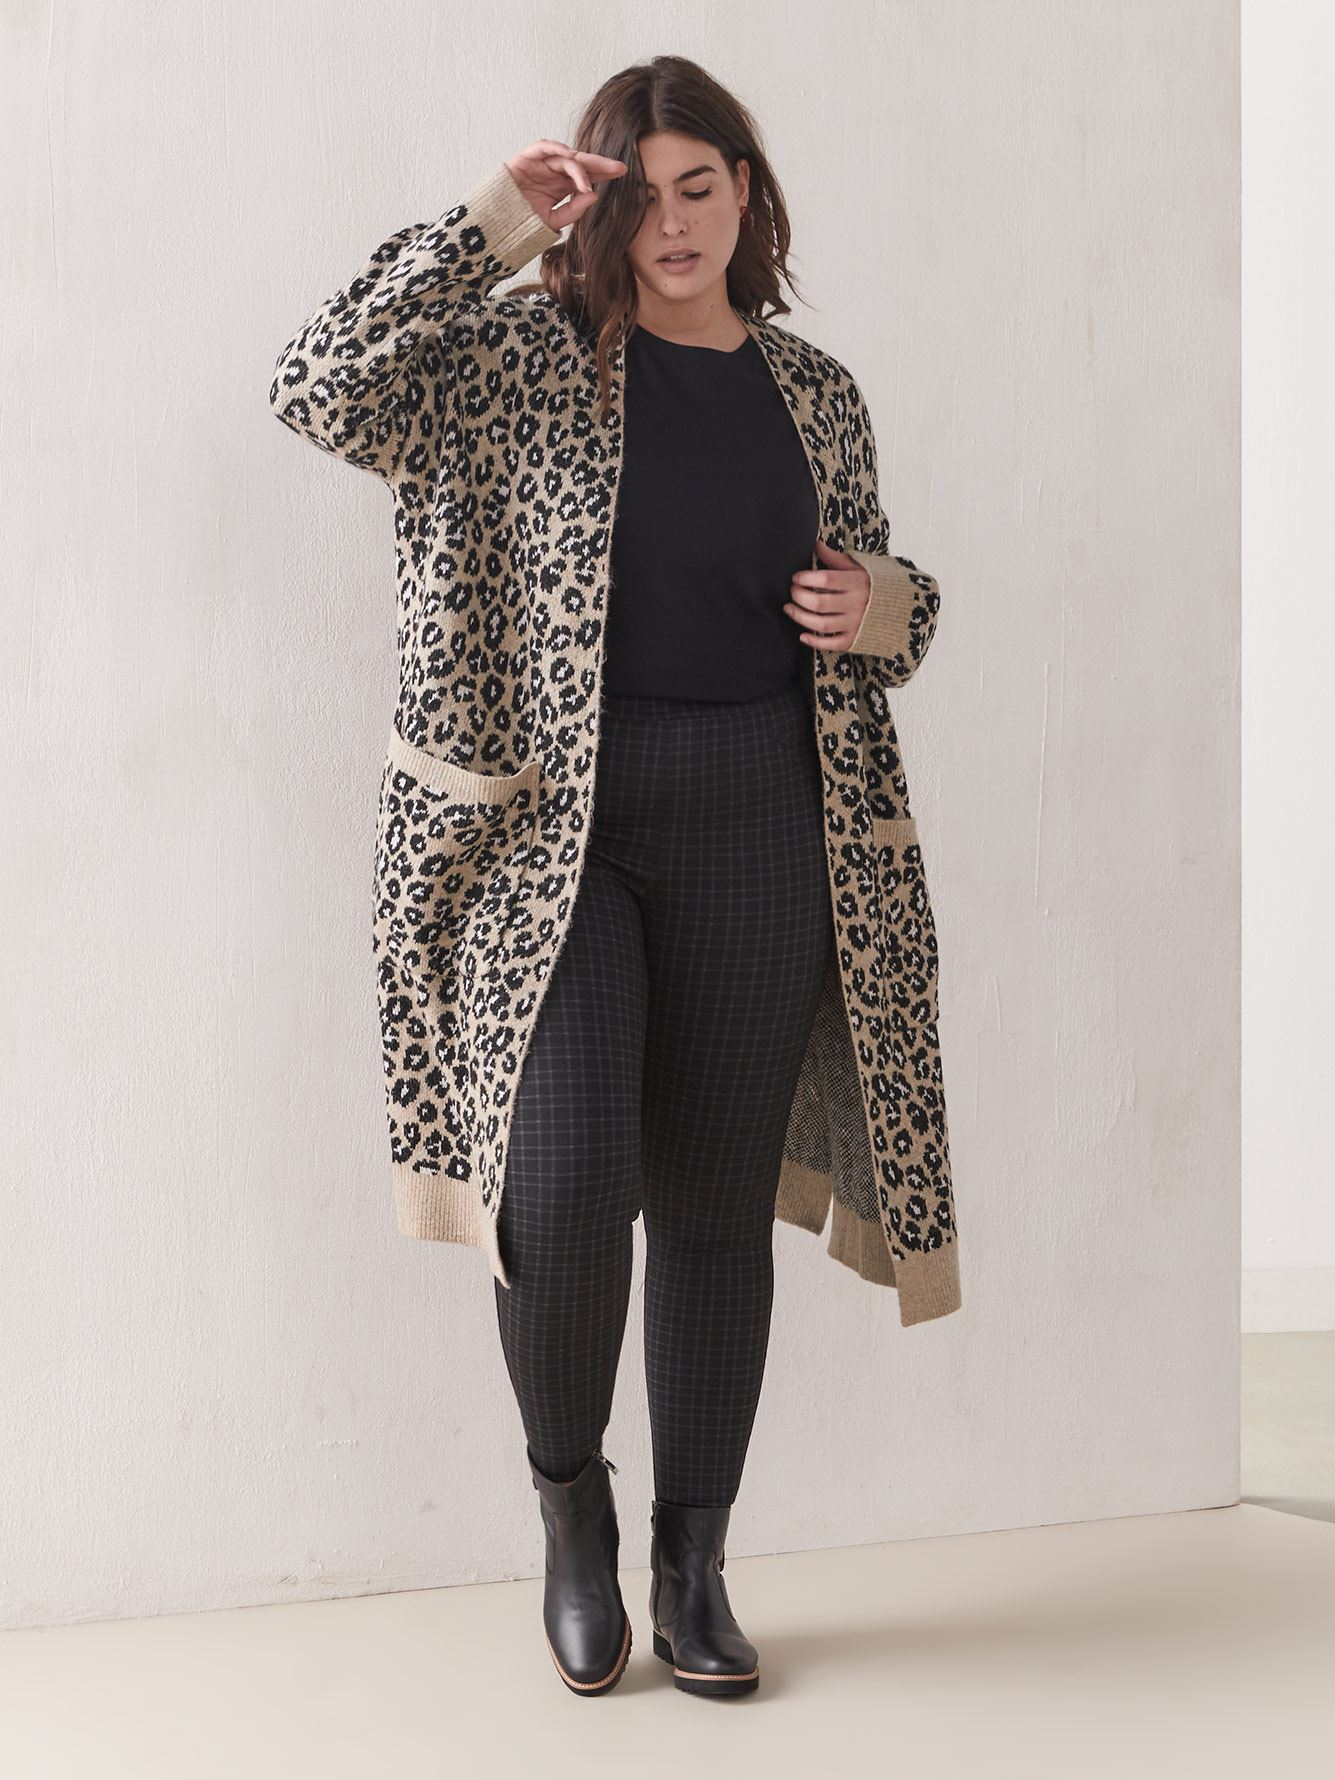 Cat's Meow Leopard-Print Cardigan - Sanctuary